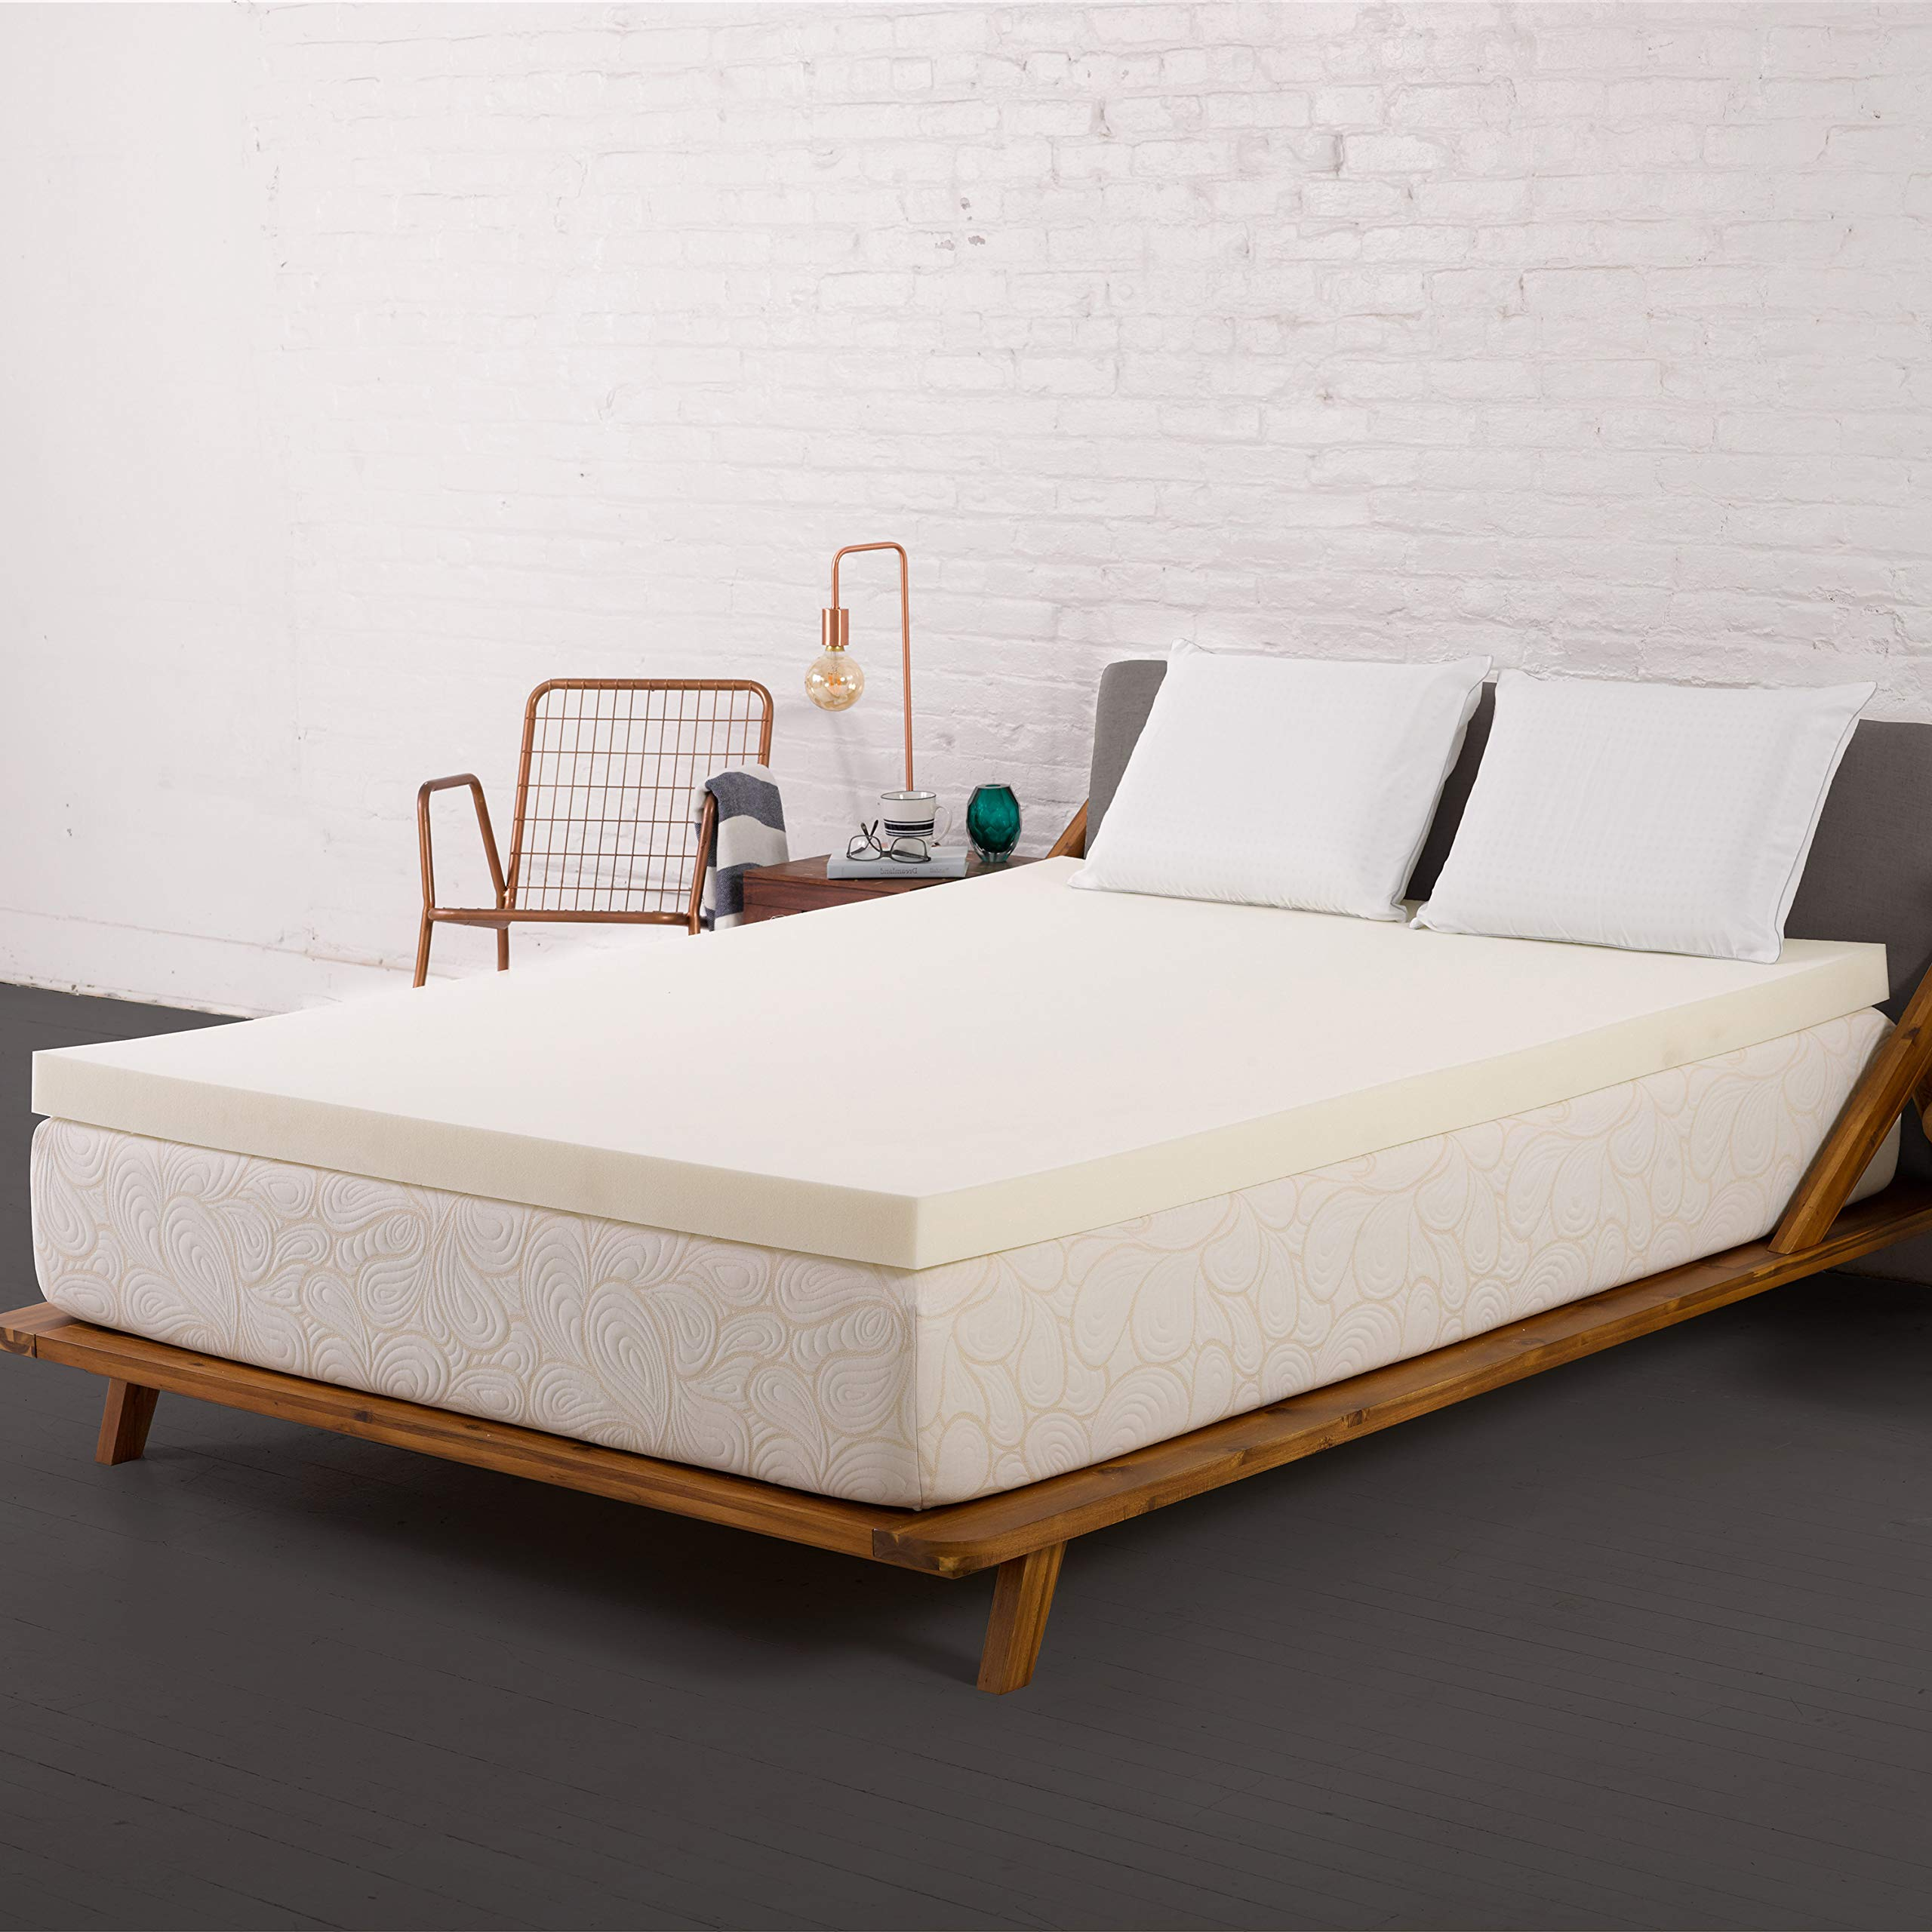 SleepJoy 3-inch ViscO2 Memory Foam Mattress Topper with Breathable Design, Made in The USA - Twin XL Size for The Dorm ...